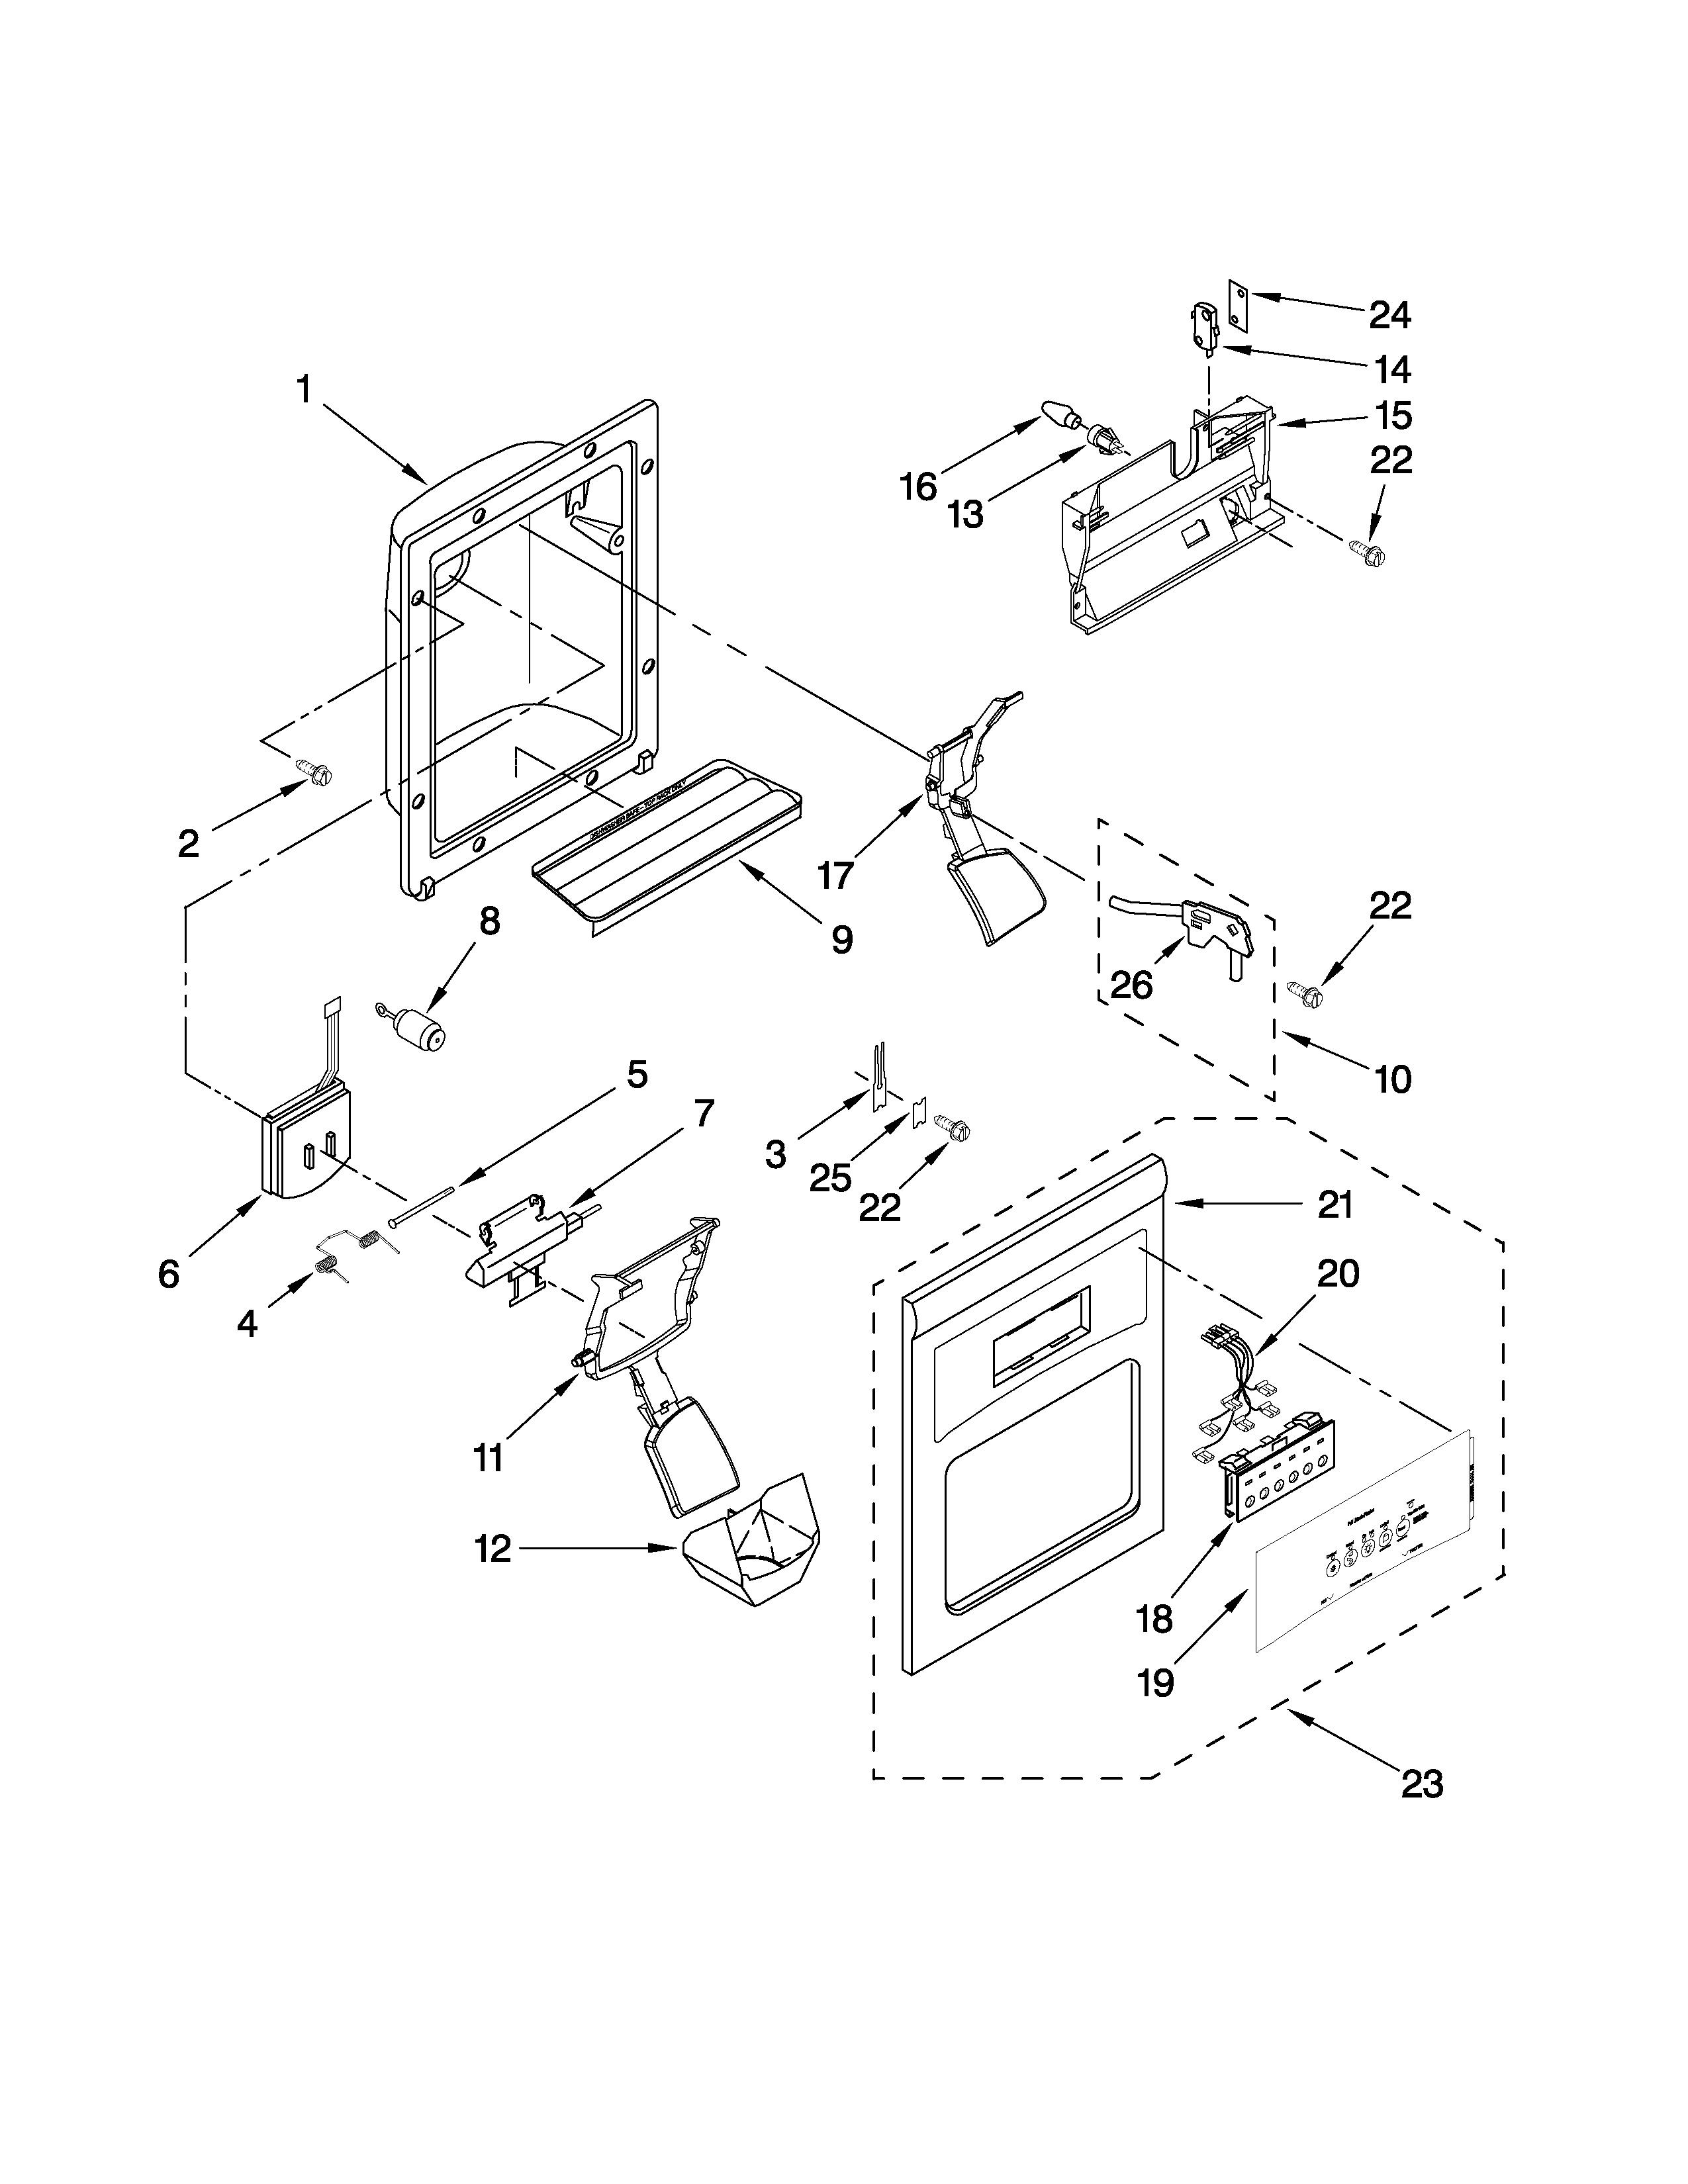 Whirlpool ED5PVEXWS02 dispenser front parts diagram